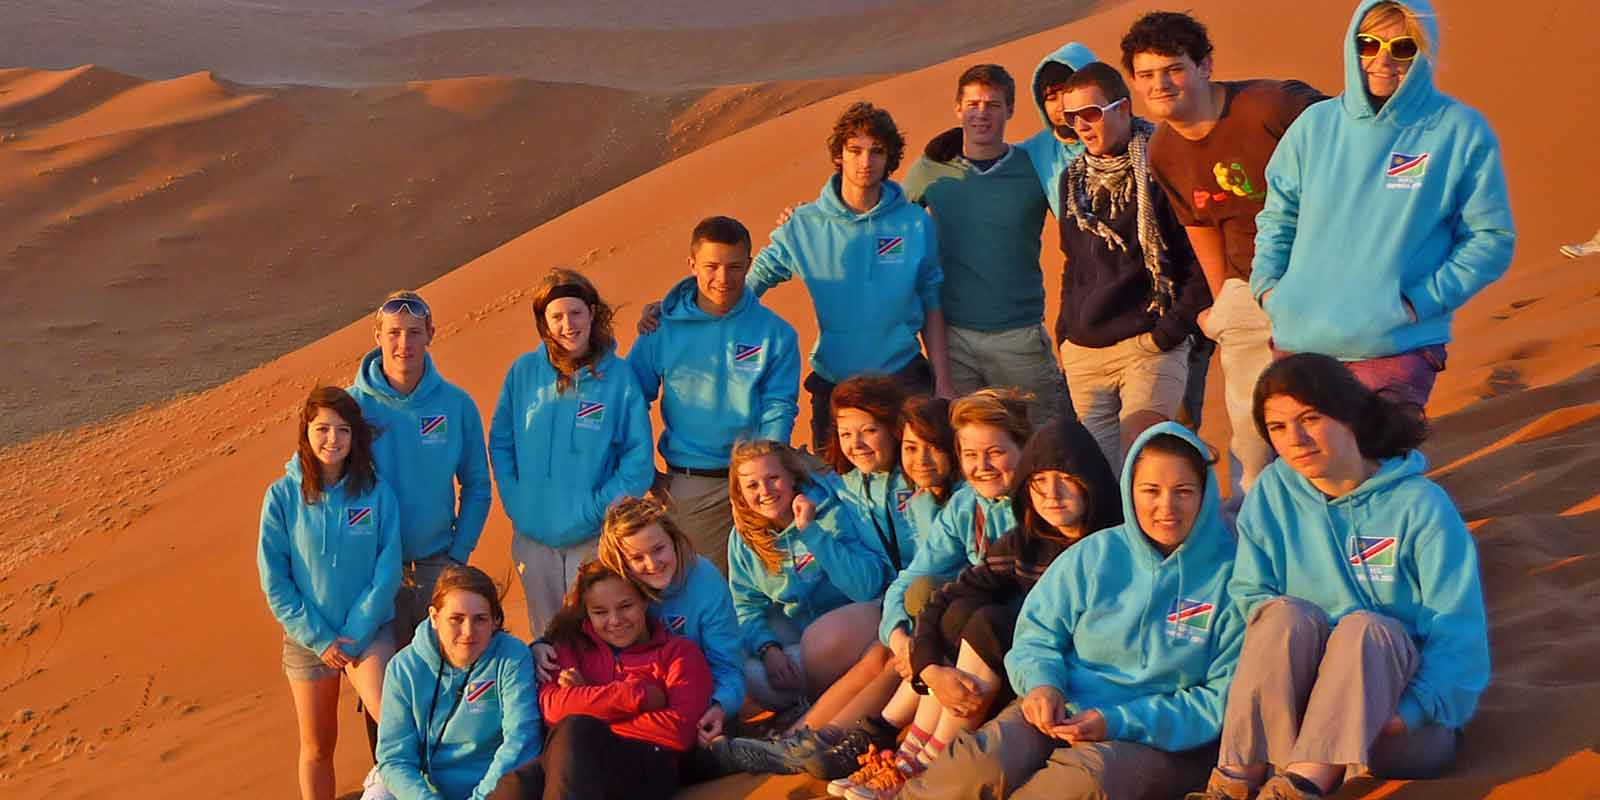 A group of students gathered at the top of a desert dune in the evening sun